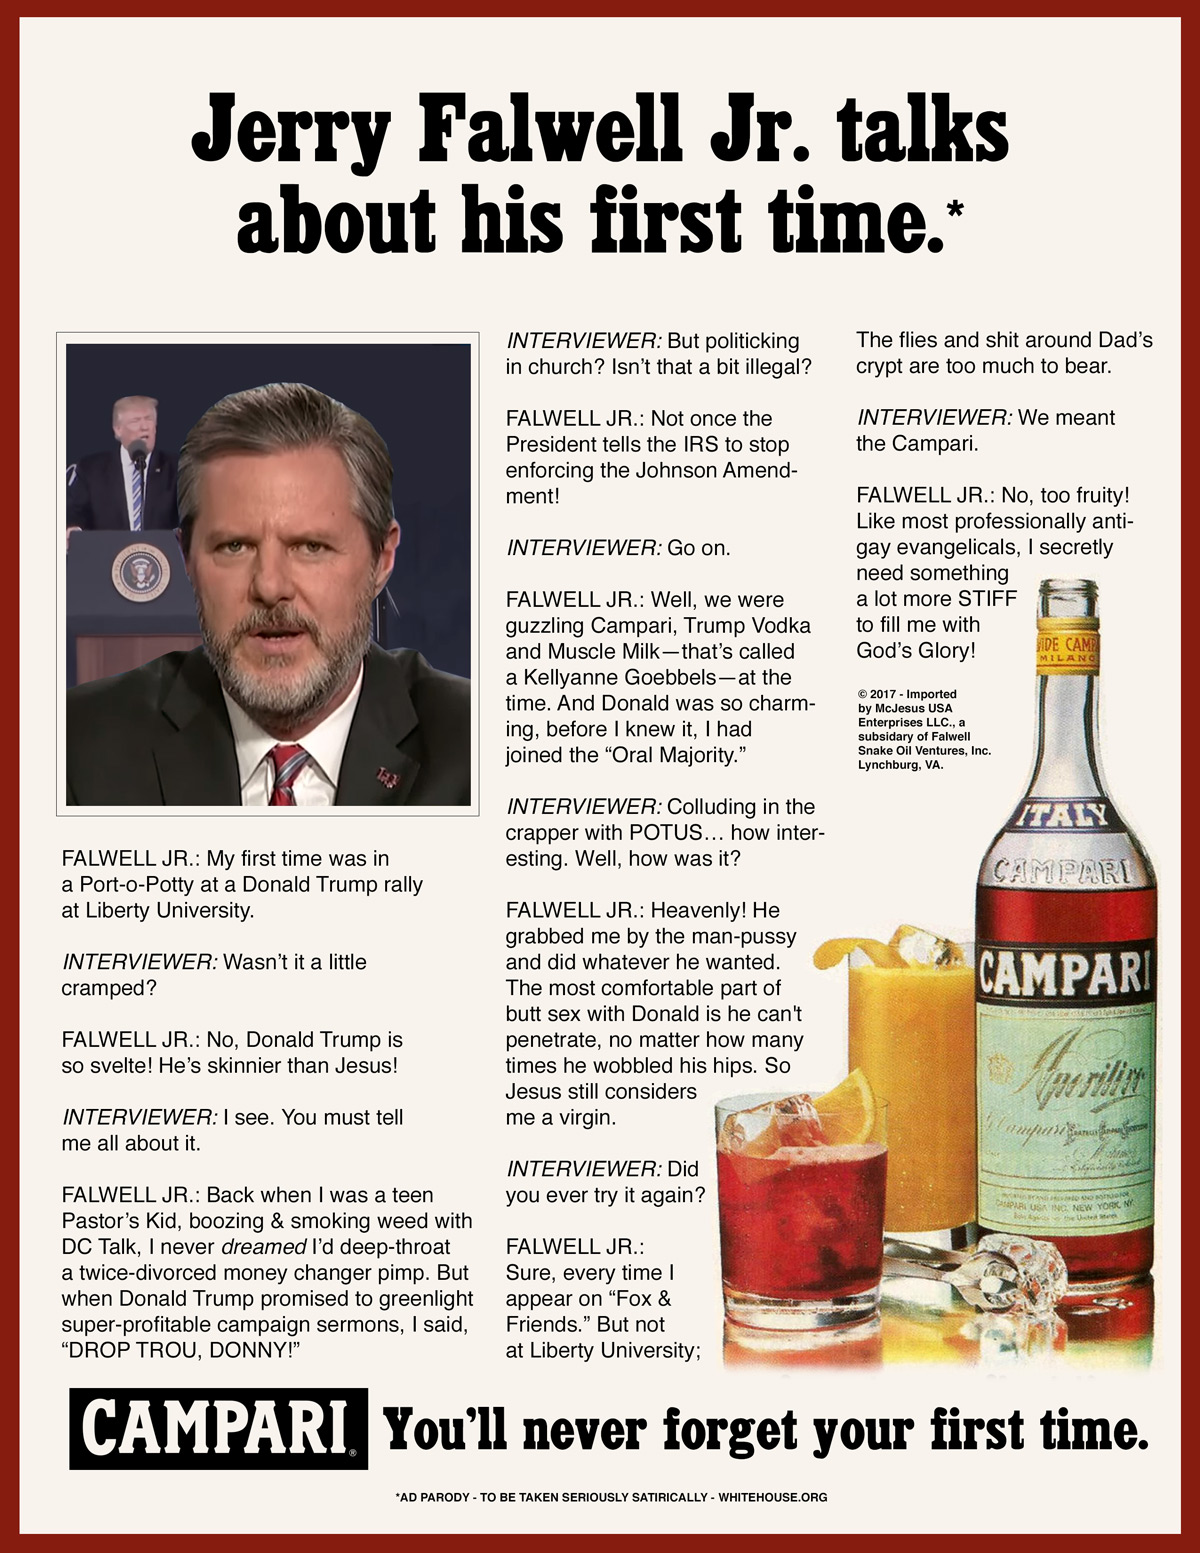 Jerry Falwell Jr. Talks About His First Time